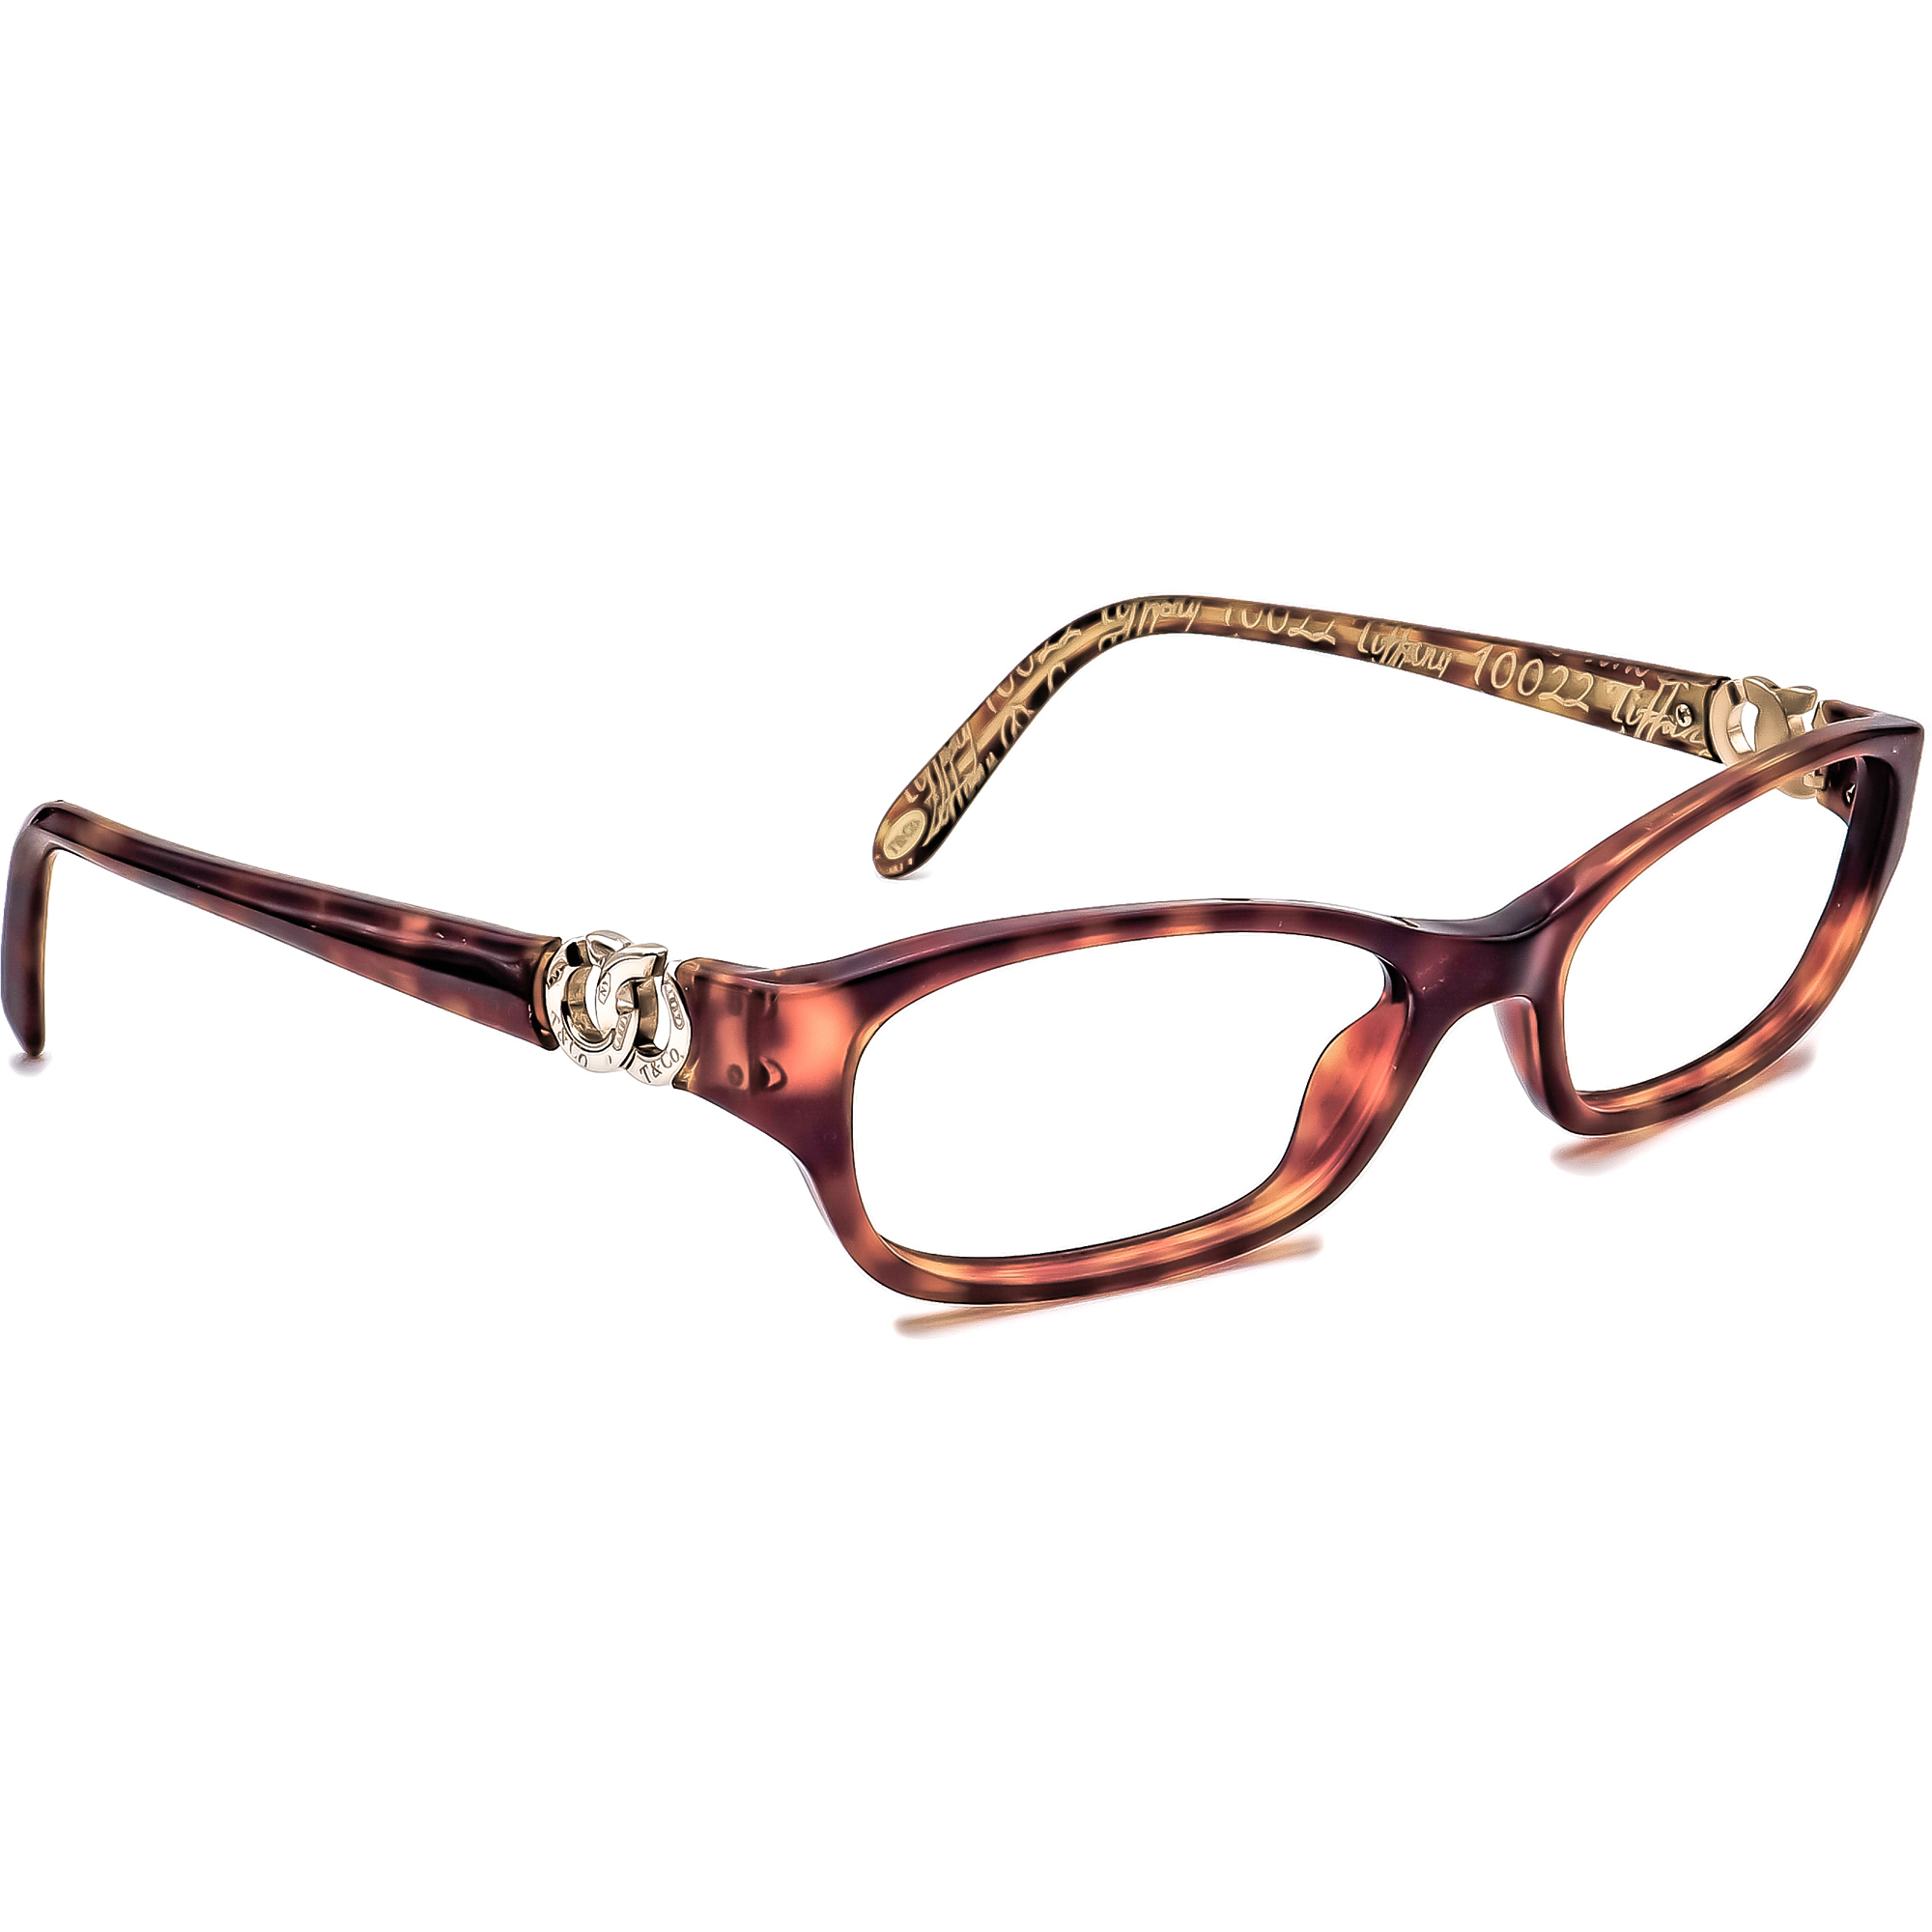 Tiffany & Co. TF 2042 8002 Eyeglasses